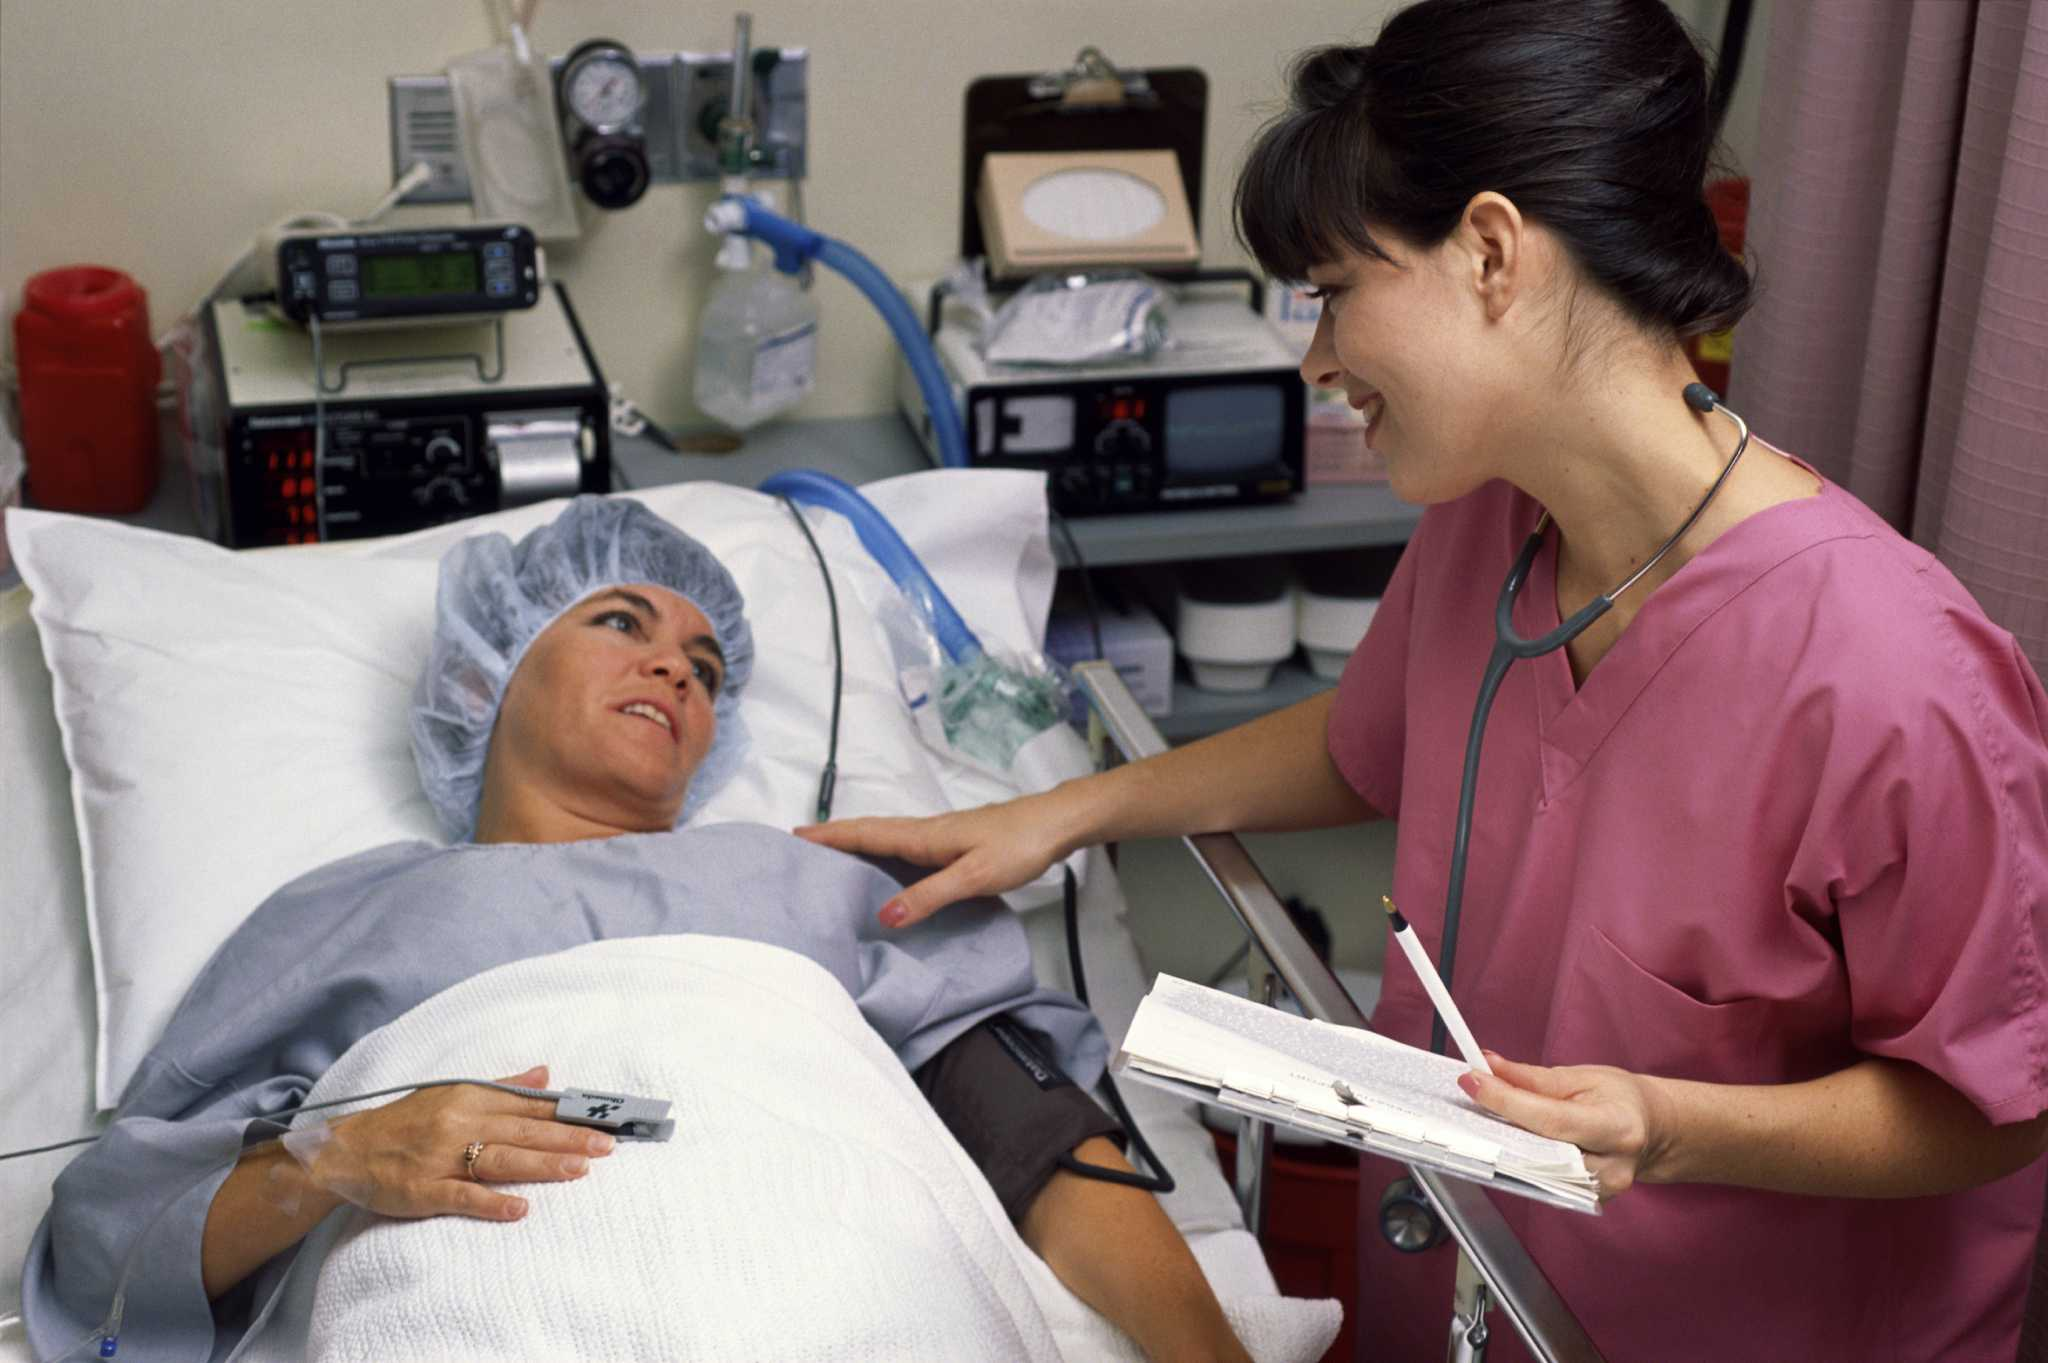 nursing shortages effect of patient care For policymakers it is best to focus on the two most practical solutions to alleviate the impact of the nursing shortage on u direct patient care were associated.